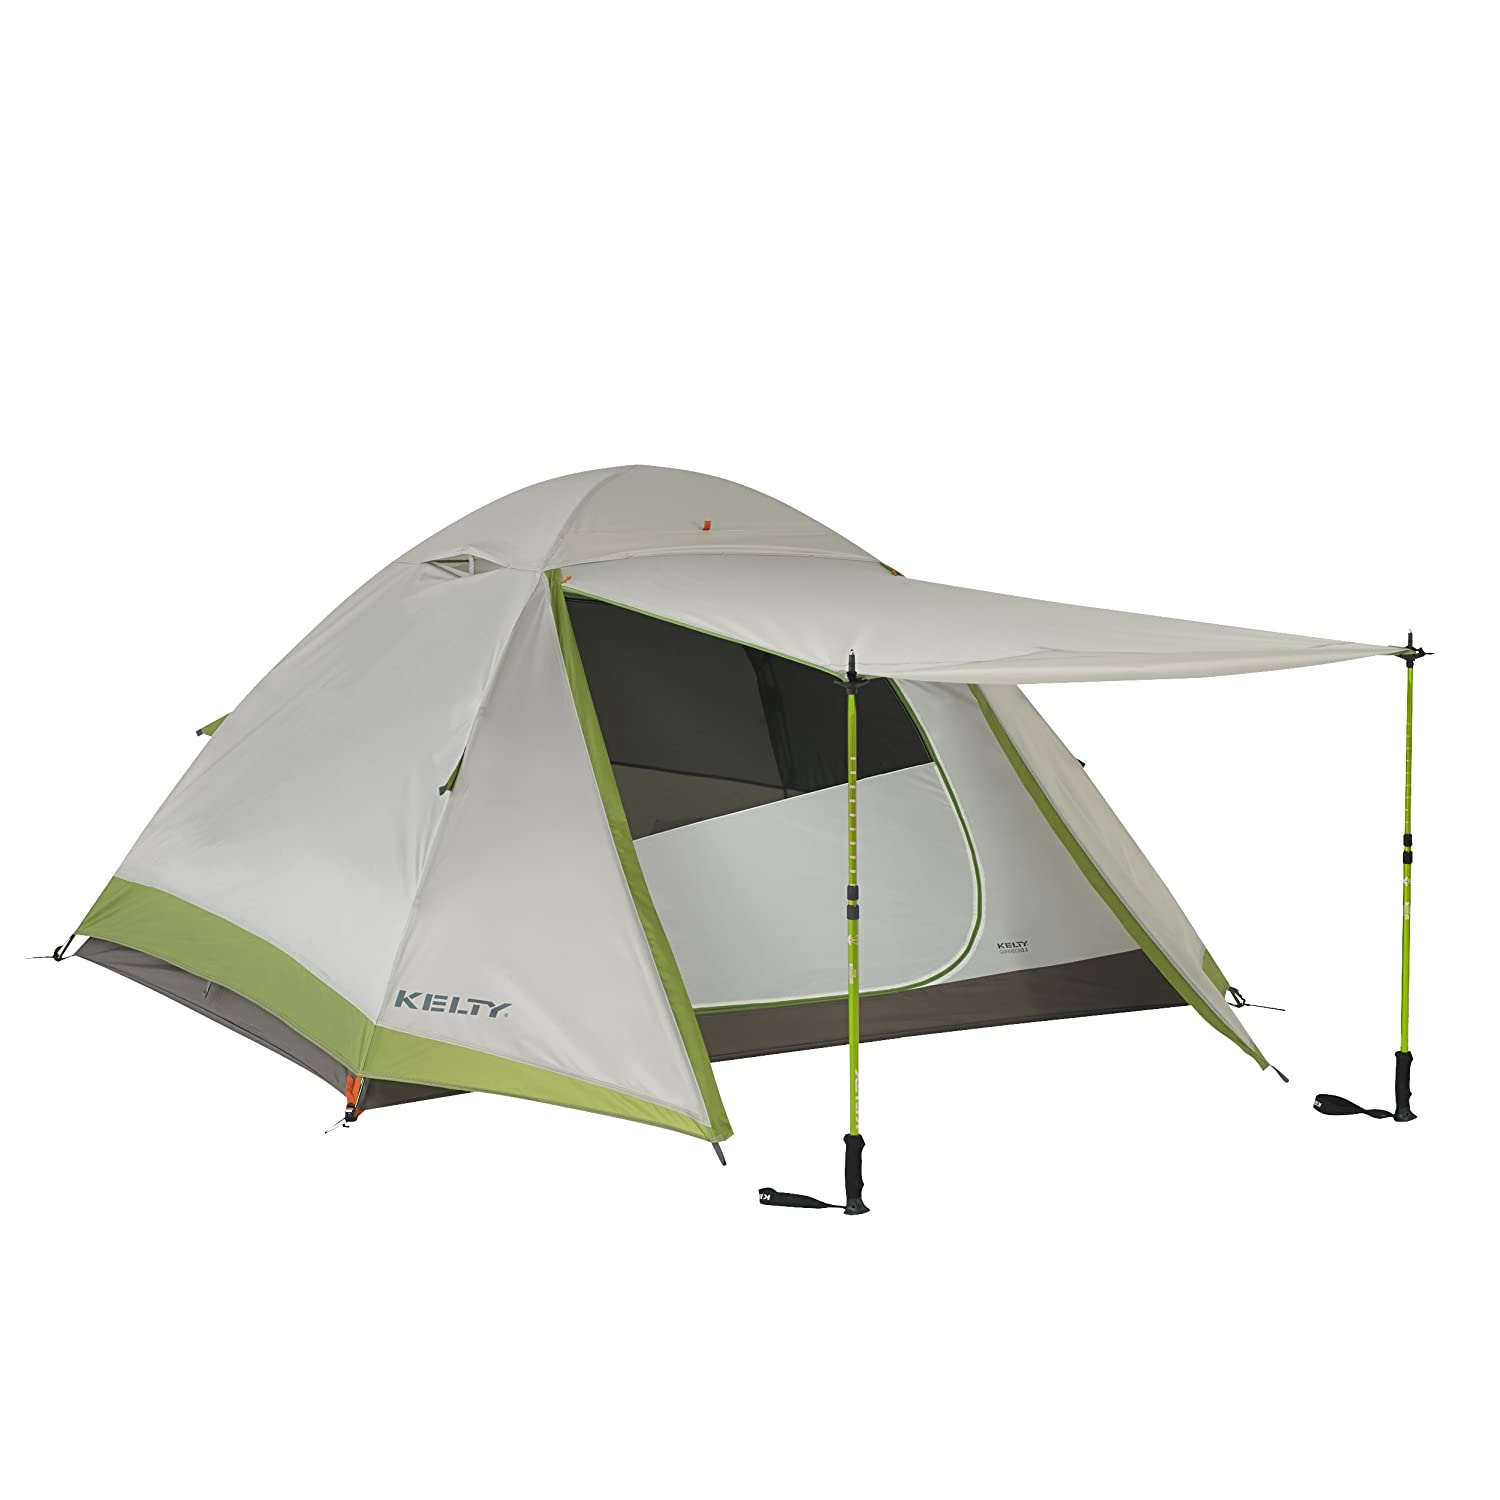 Amazon.com  Kelty Gunnison 3.3 Tent with Footprint  Sports u0026 Outdoors  sc 1 st  Amazon.com & Amazon.com : Kelty Gunnison 3.3 Tent with Footprint : Sports ...